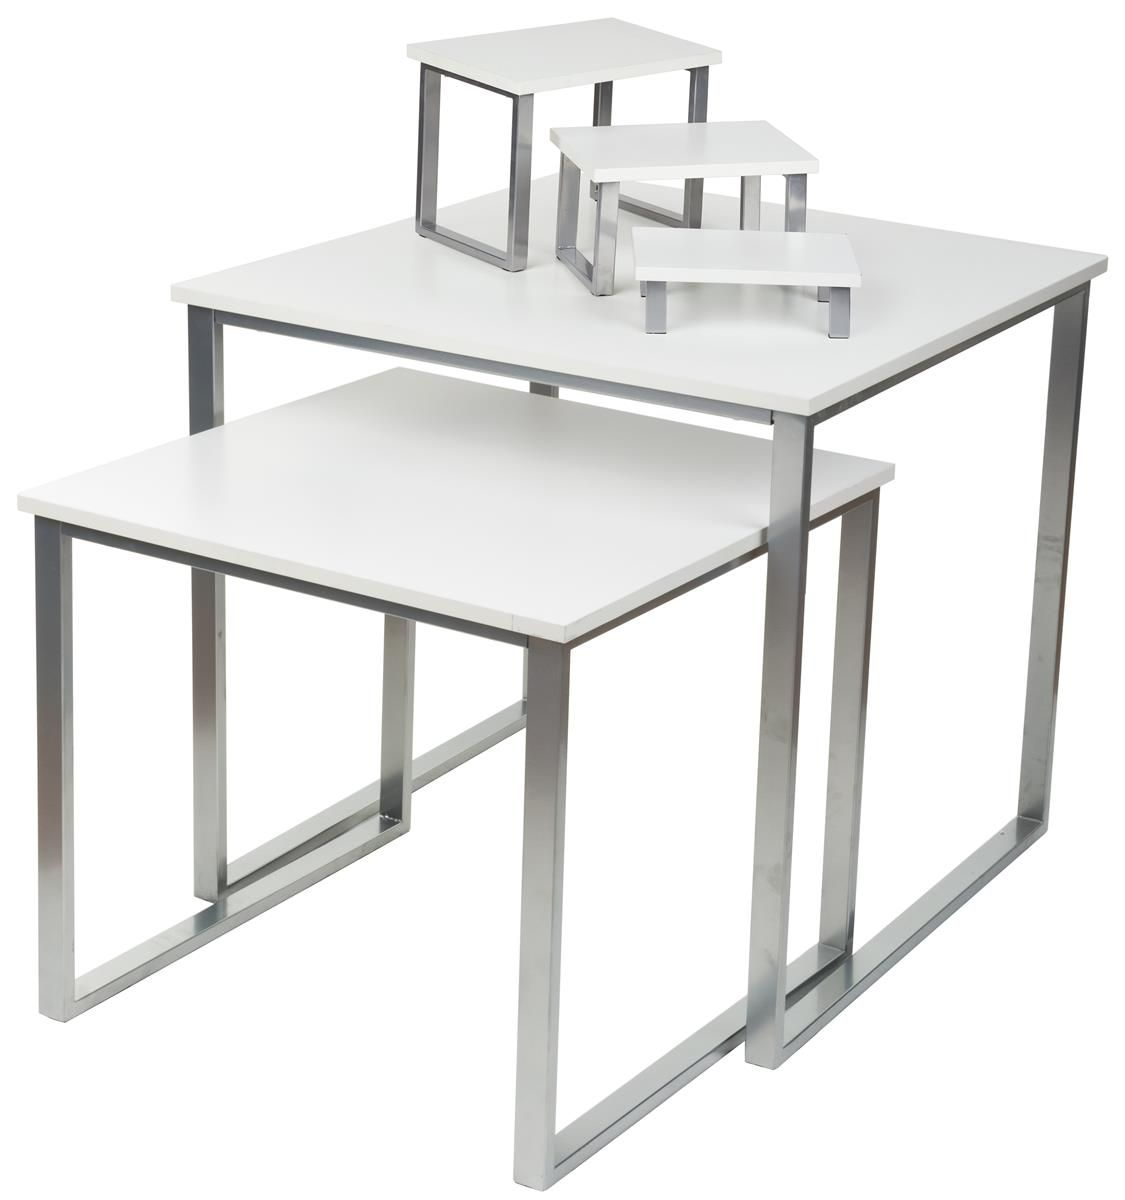 Set Of 2 Nesting Tables For Floor With 3 Tabletop Display Risers White